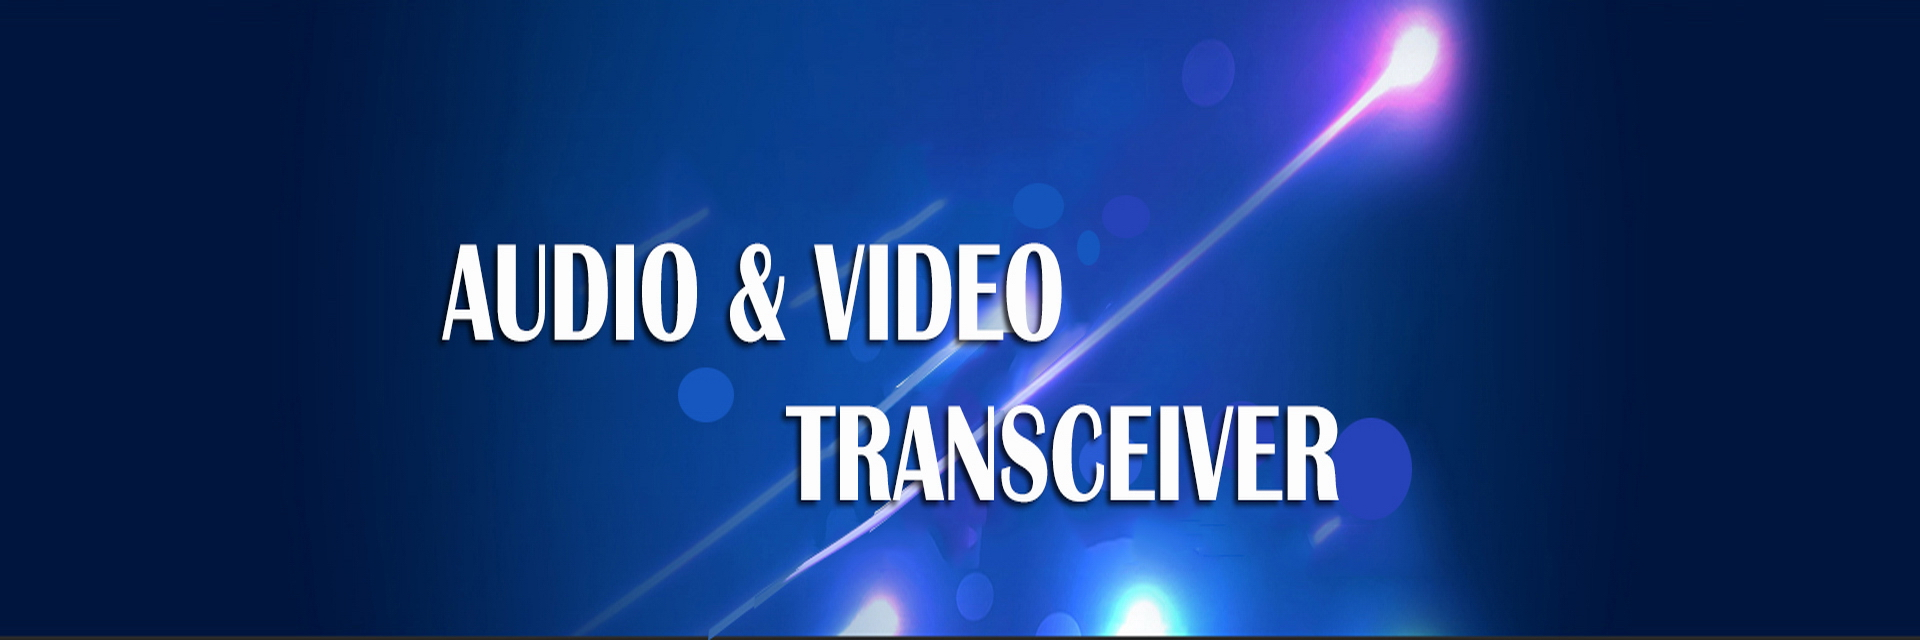 Audio & Video Transceiver Product